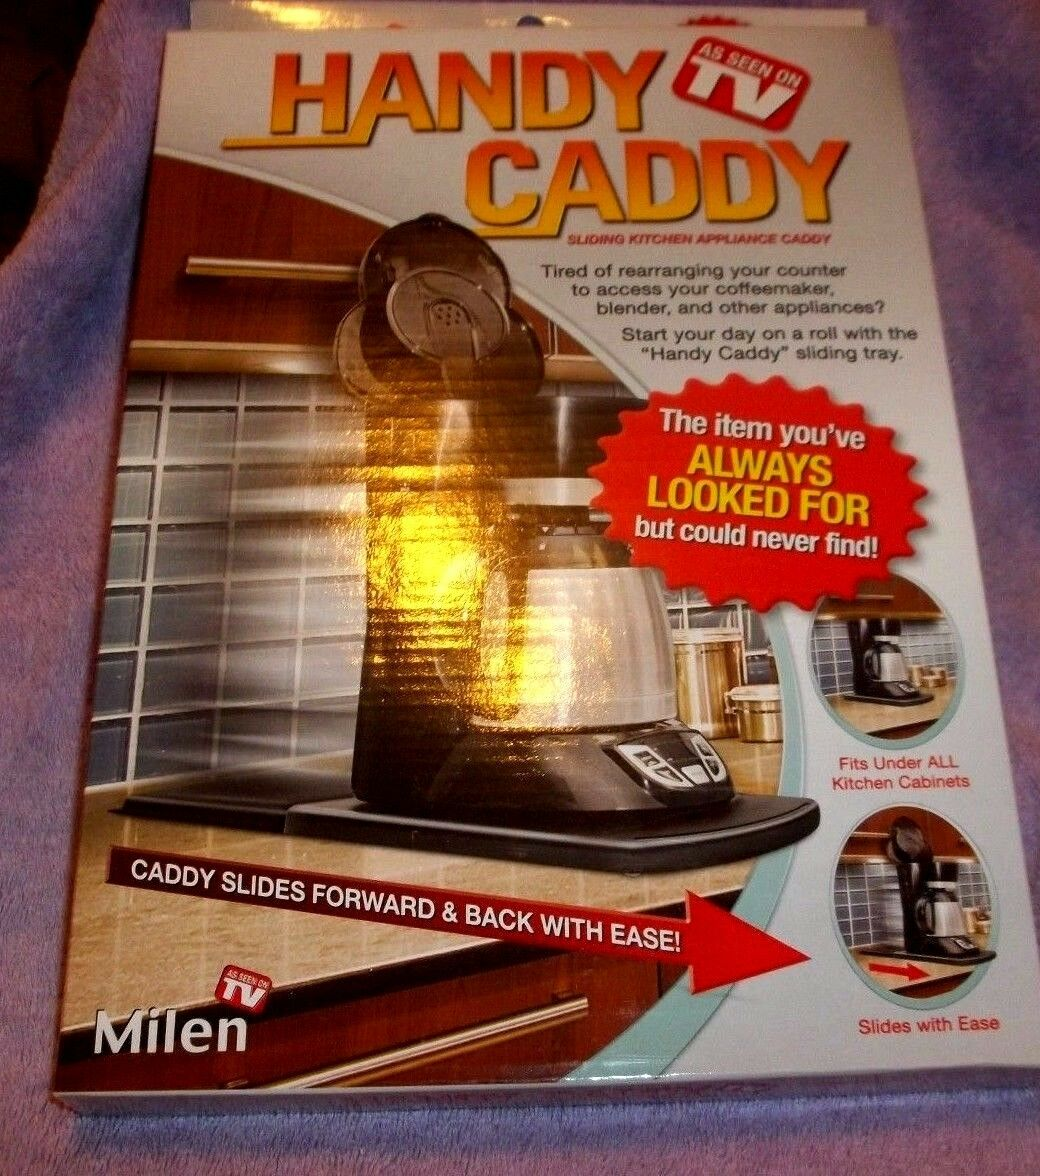 Handy Caddy Sliding Under-Cabinet Appliance Moving Caddy Tra